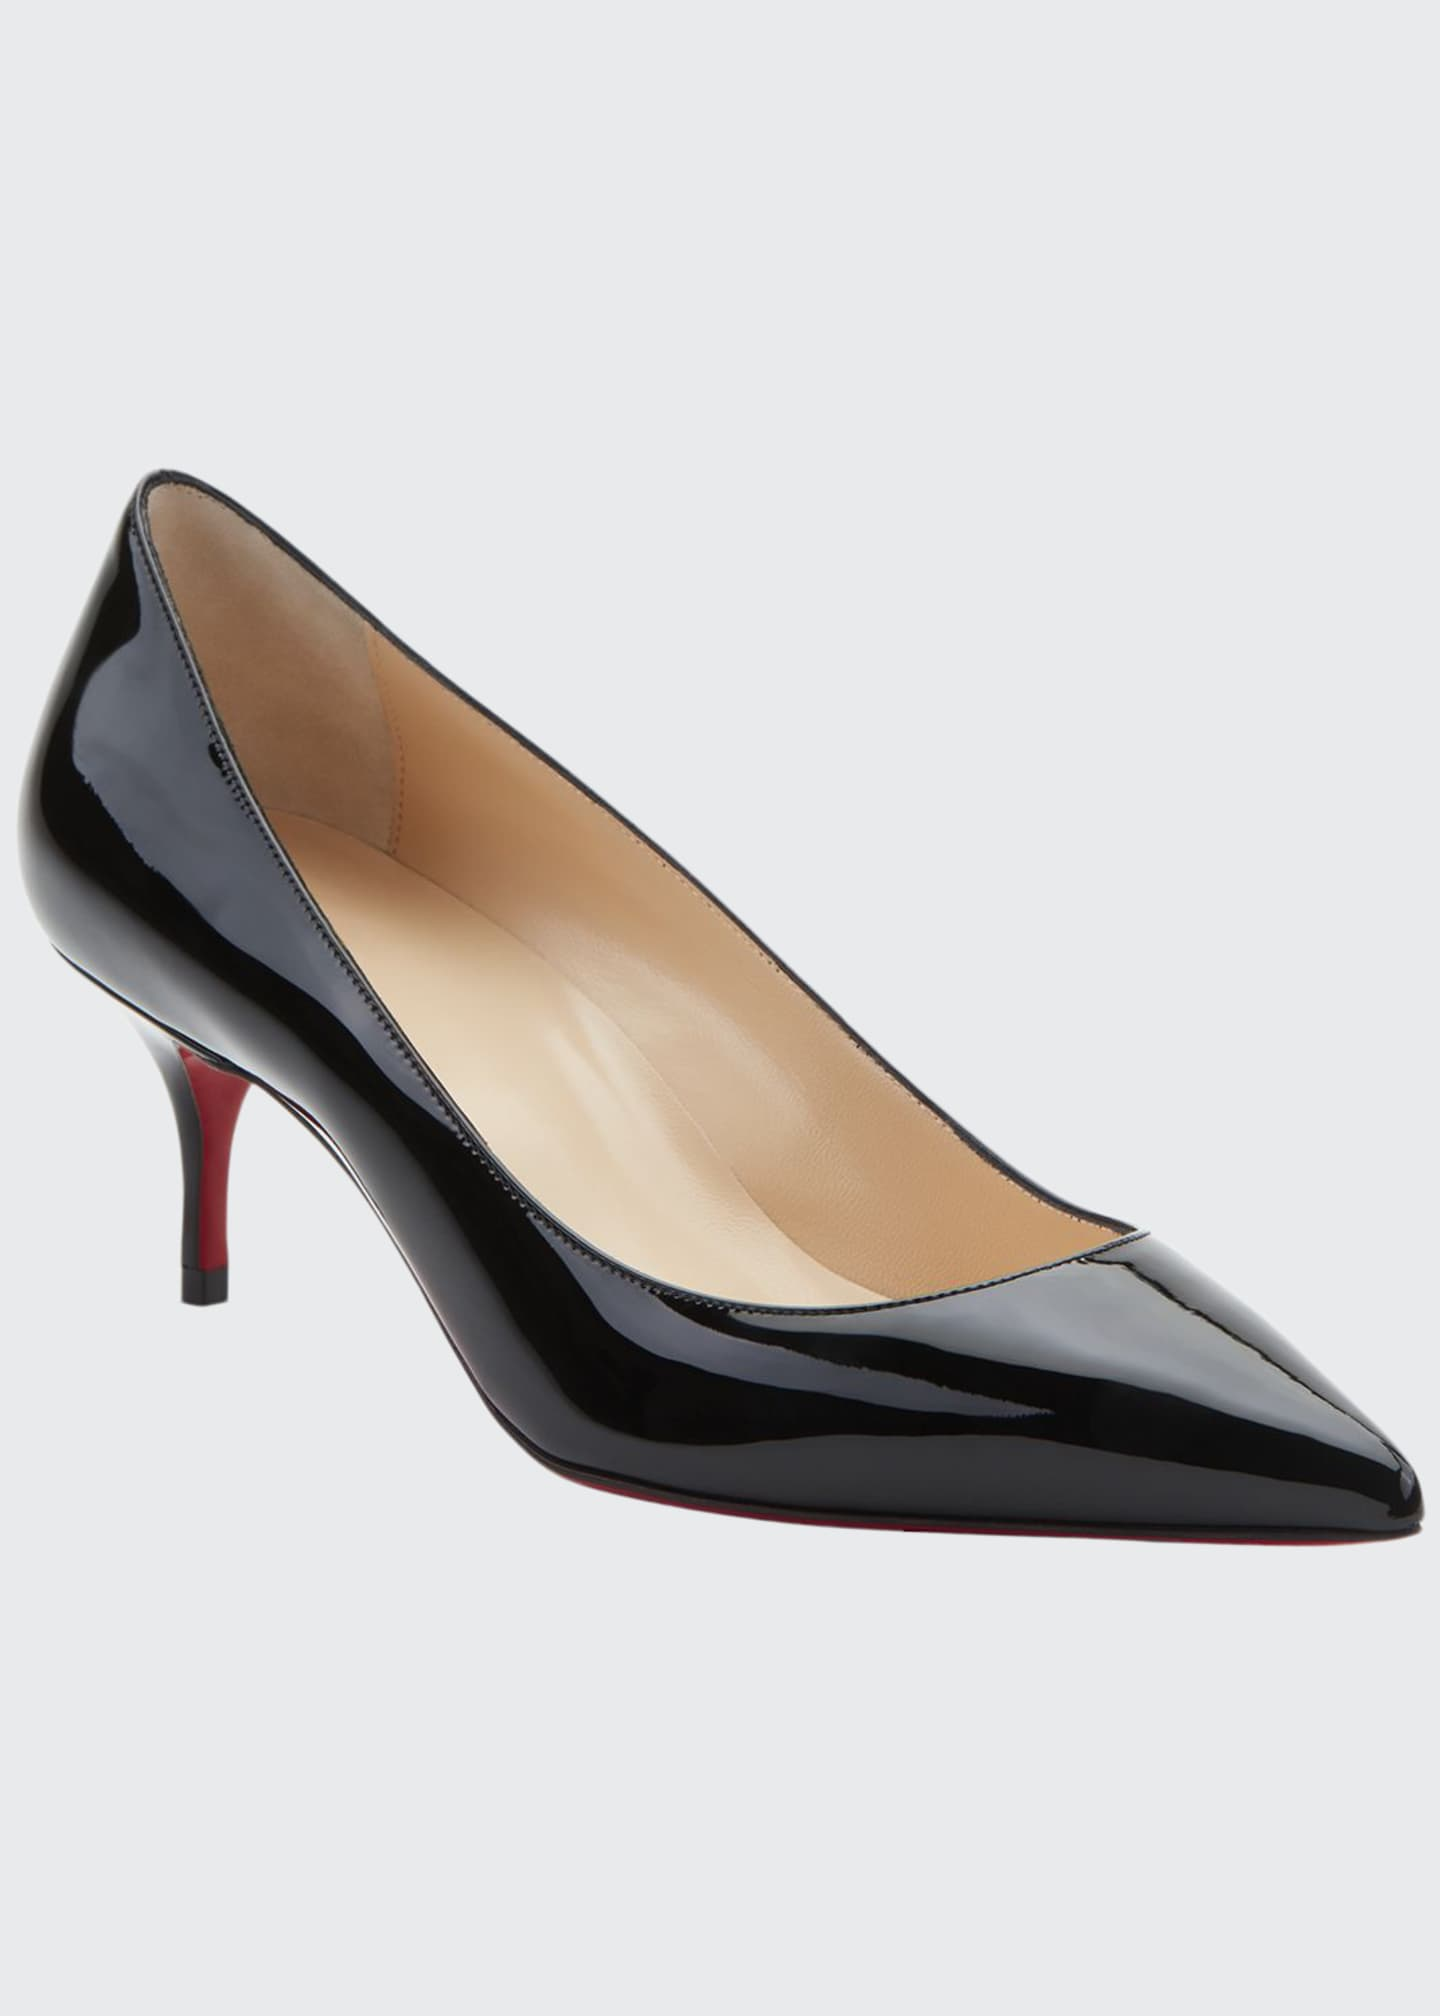 Kate Patent Red Sole Pumps by Christian Louboutin